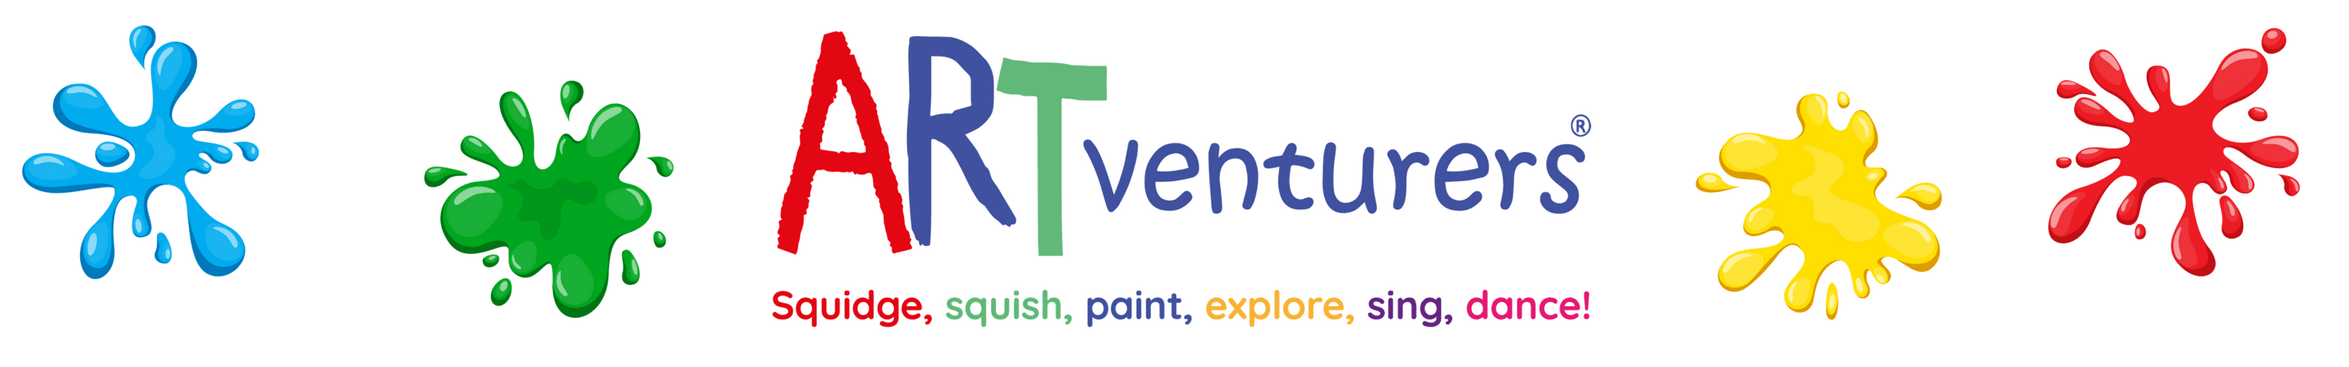 ARTventurers Dewsbury, Batley and Wakefield West